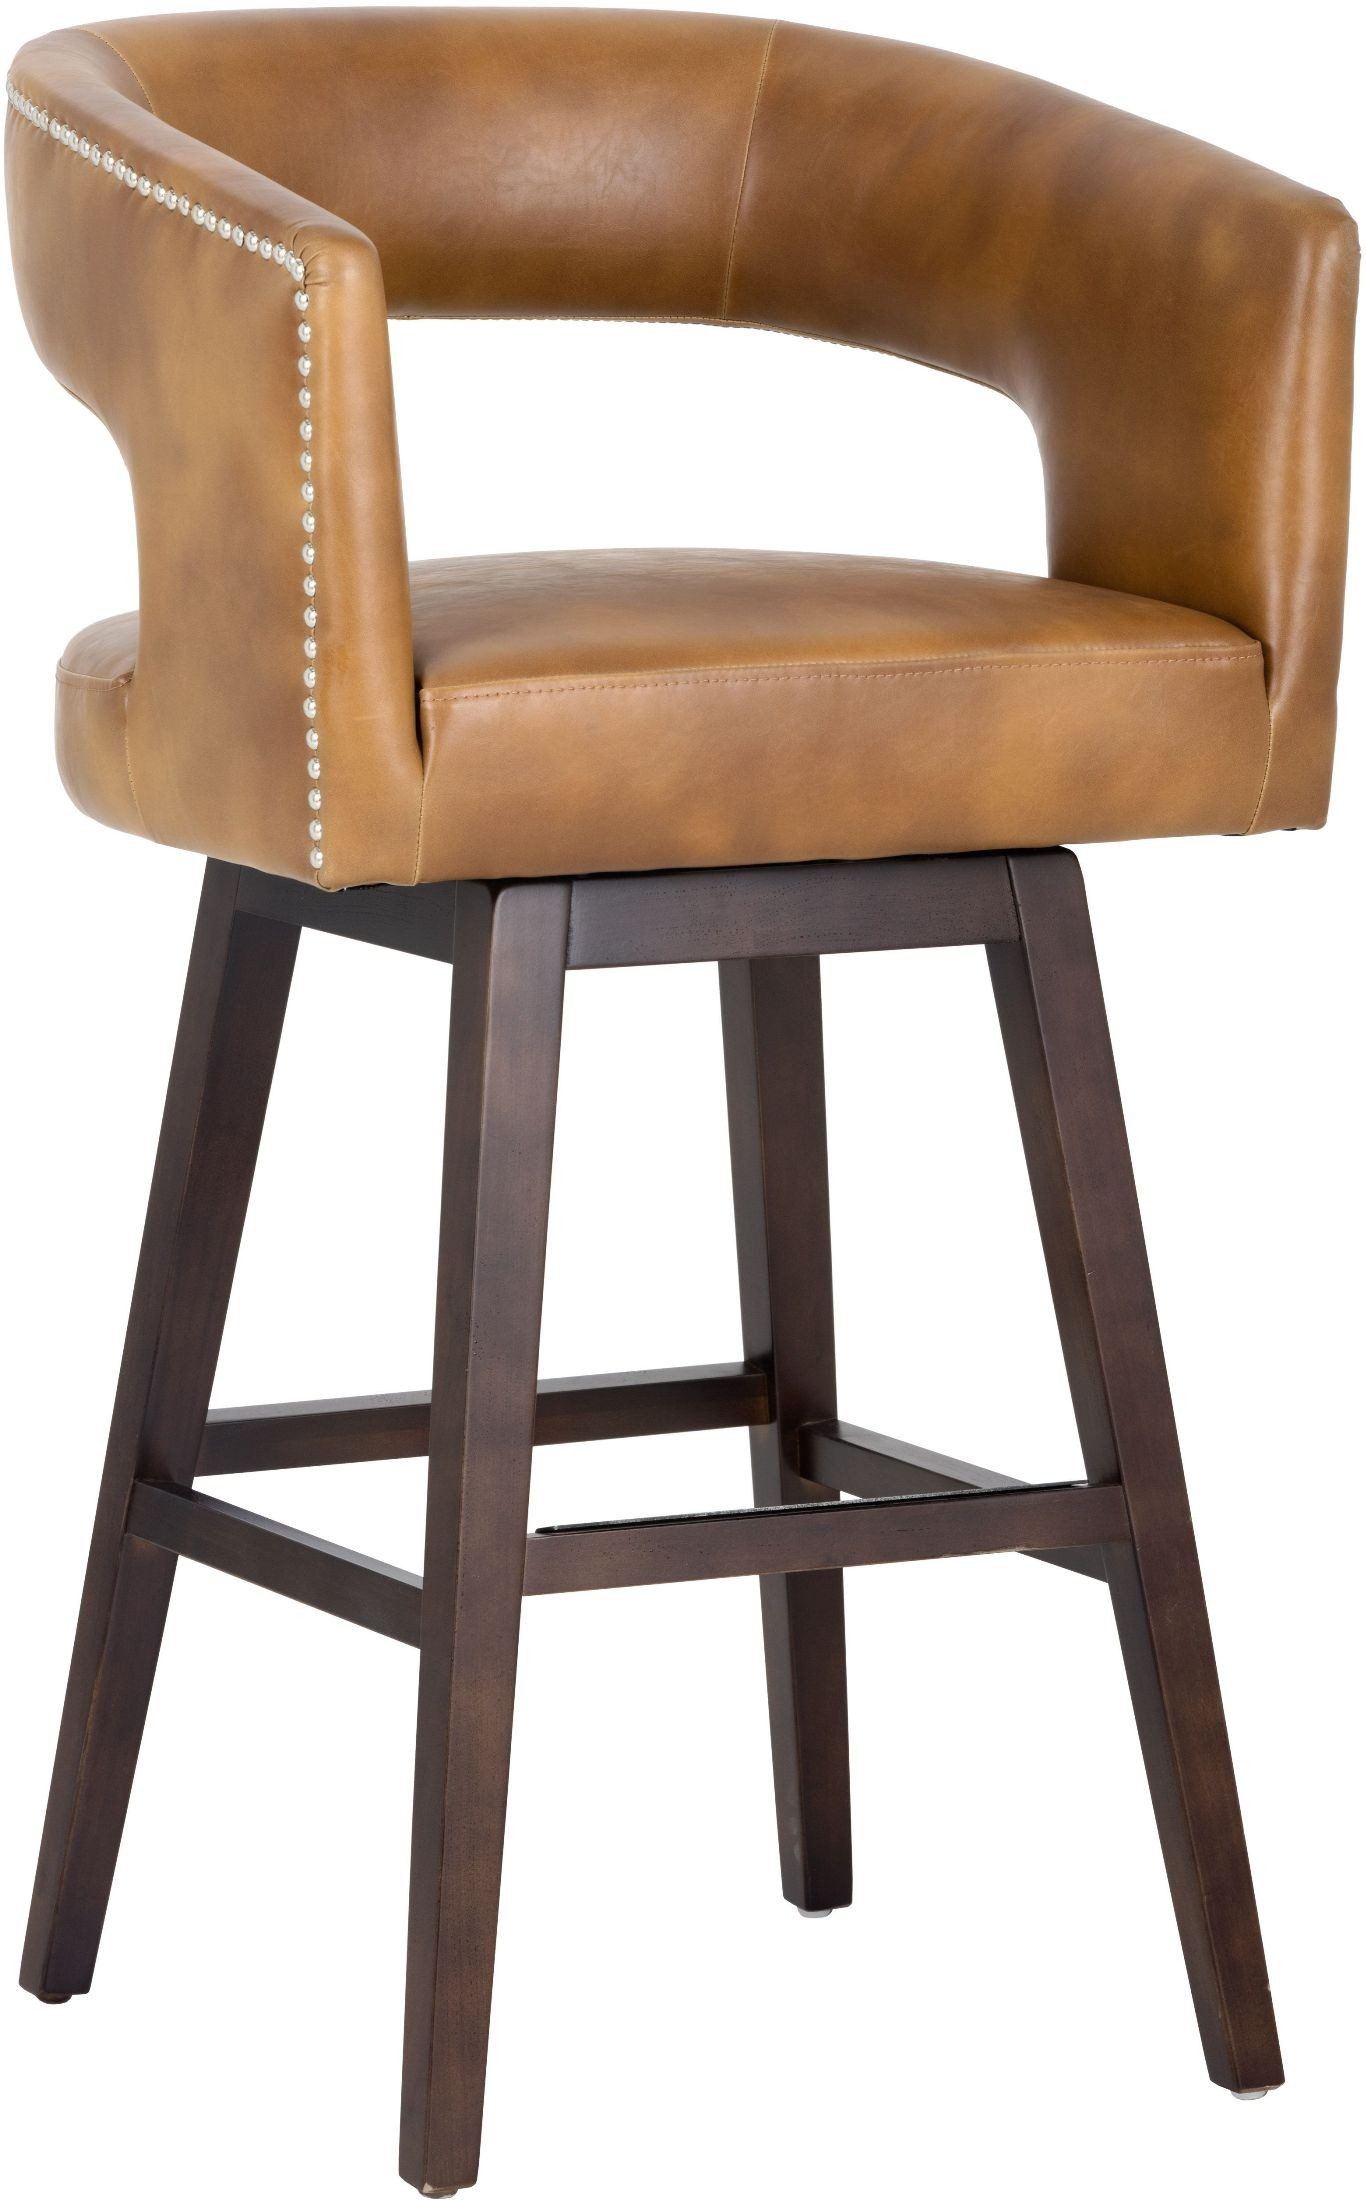 Draco Tobacco Tan Barstool From Sunpan Coleman Furniture